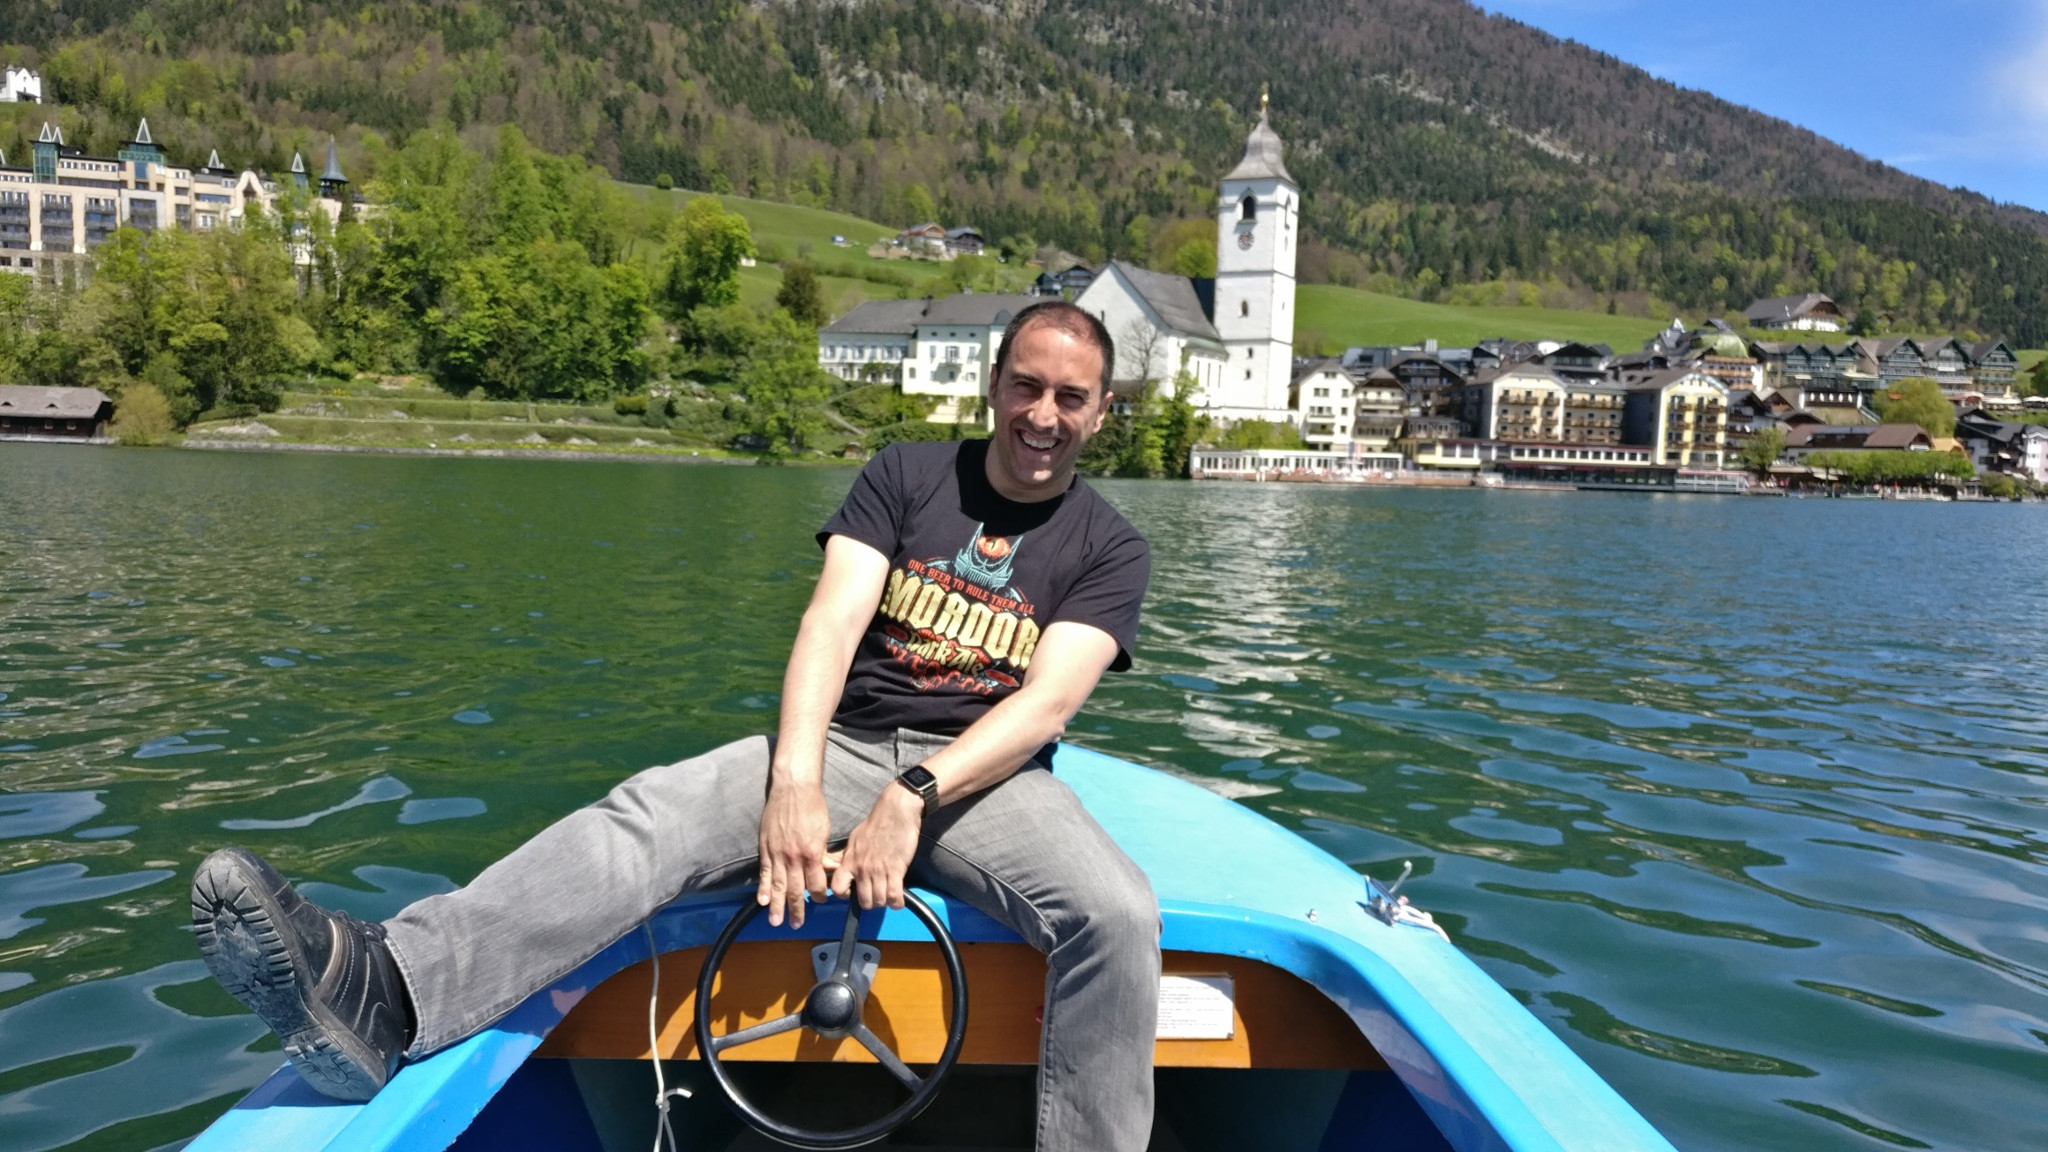 Sailing on the Wolfgangsee